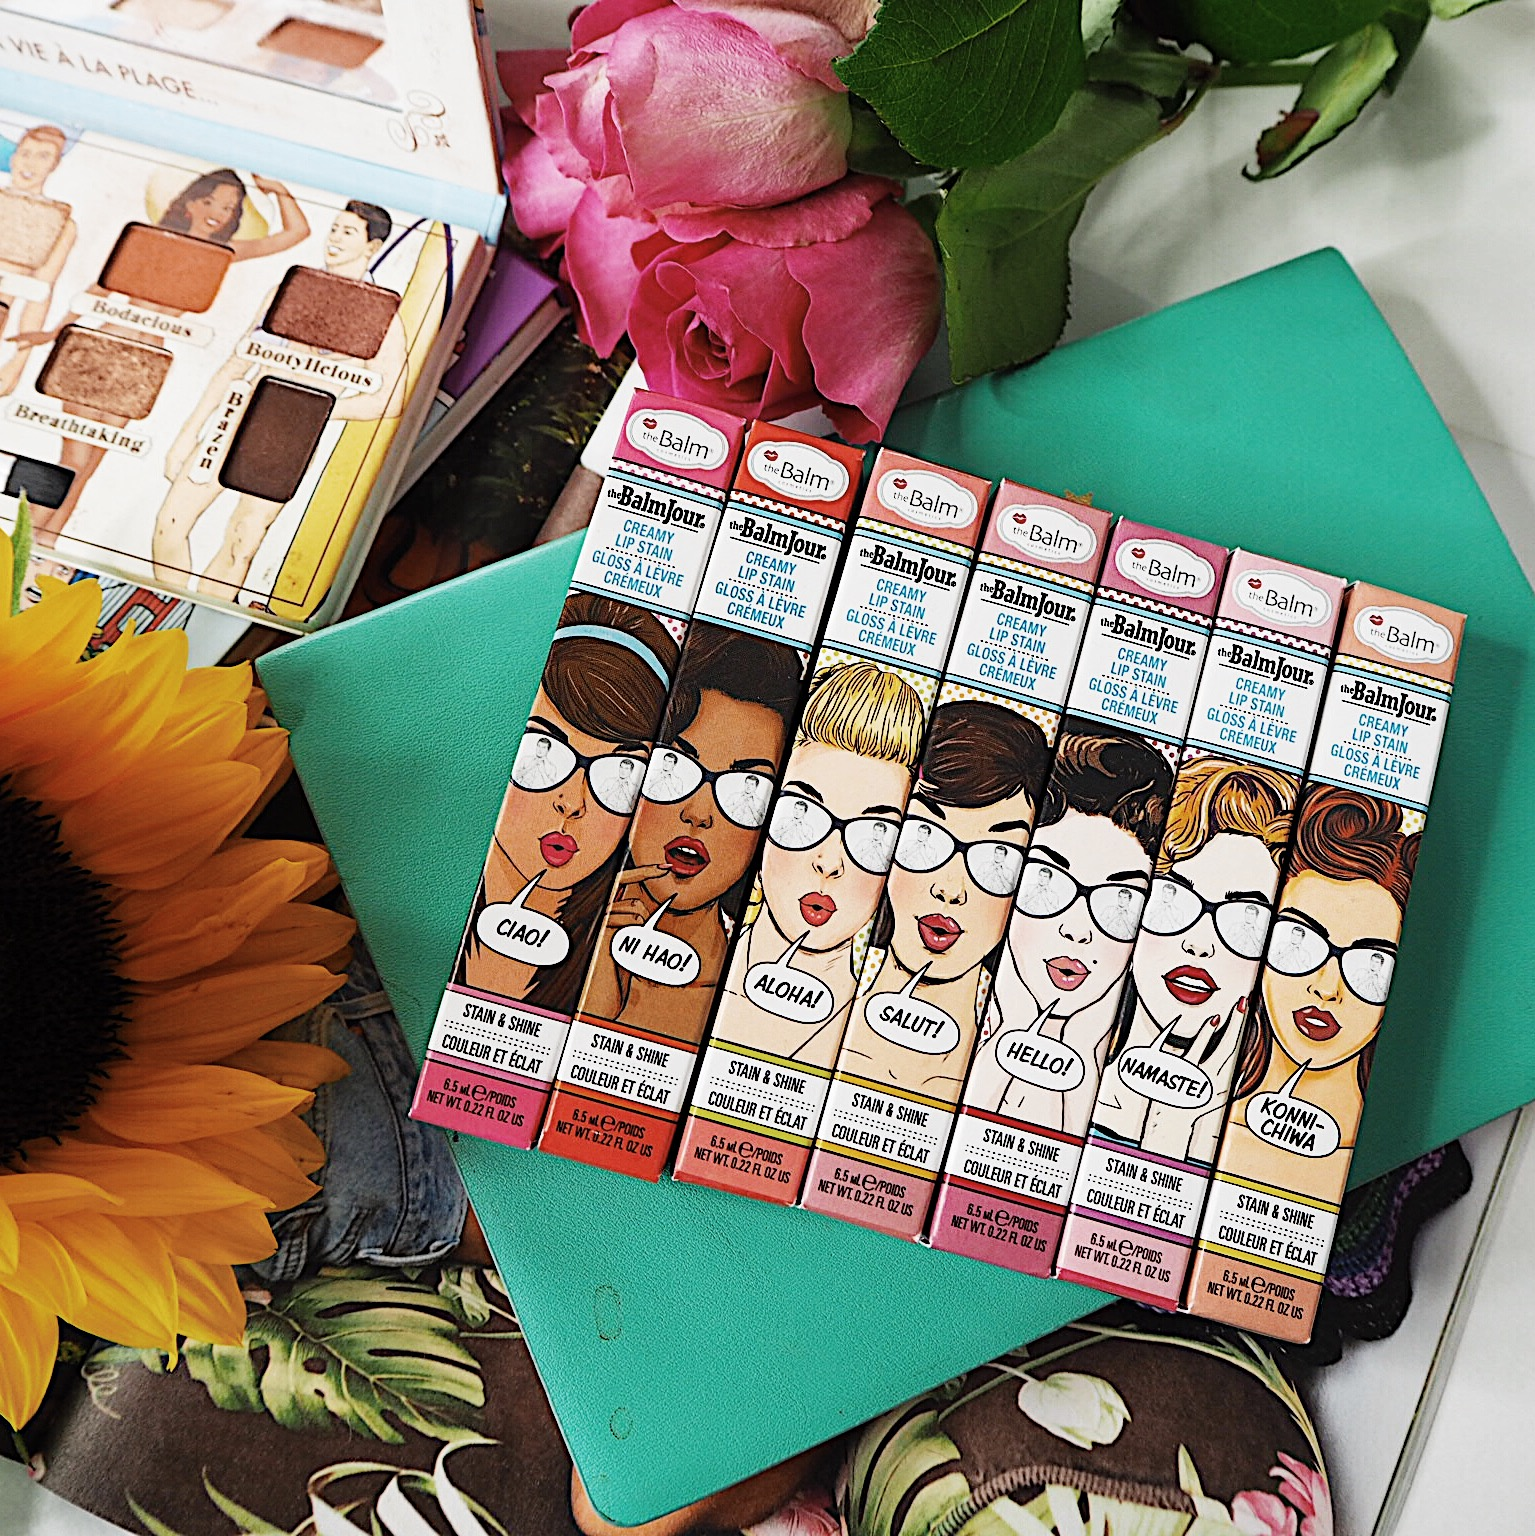 The BalmJour – New In Lips From The Balm